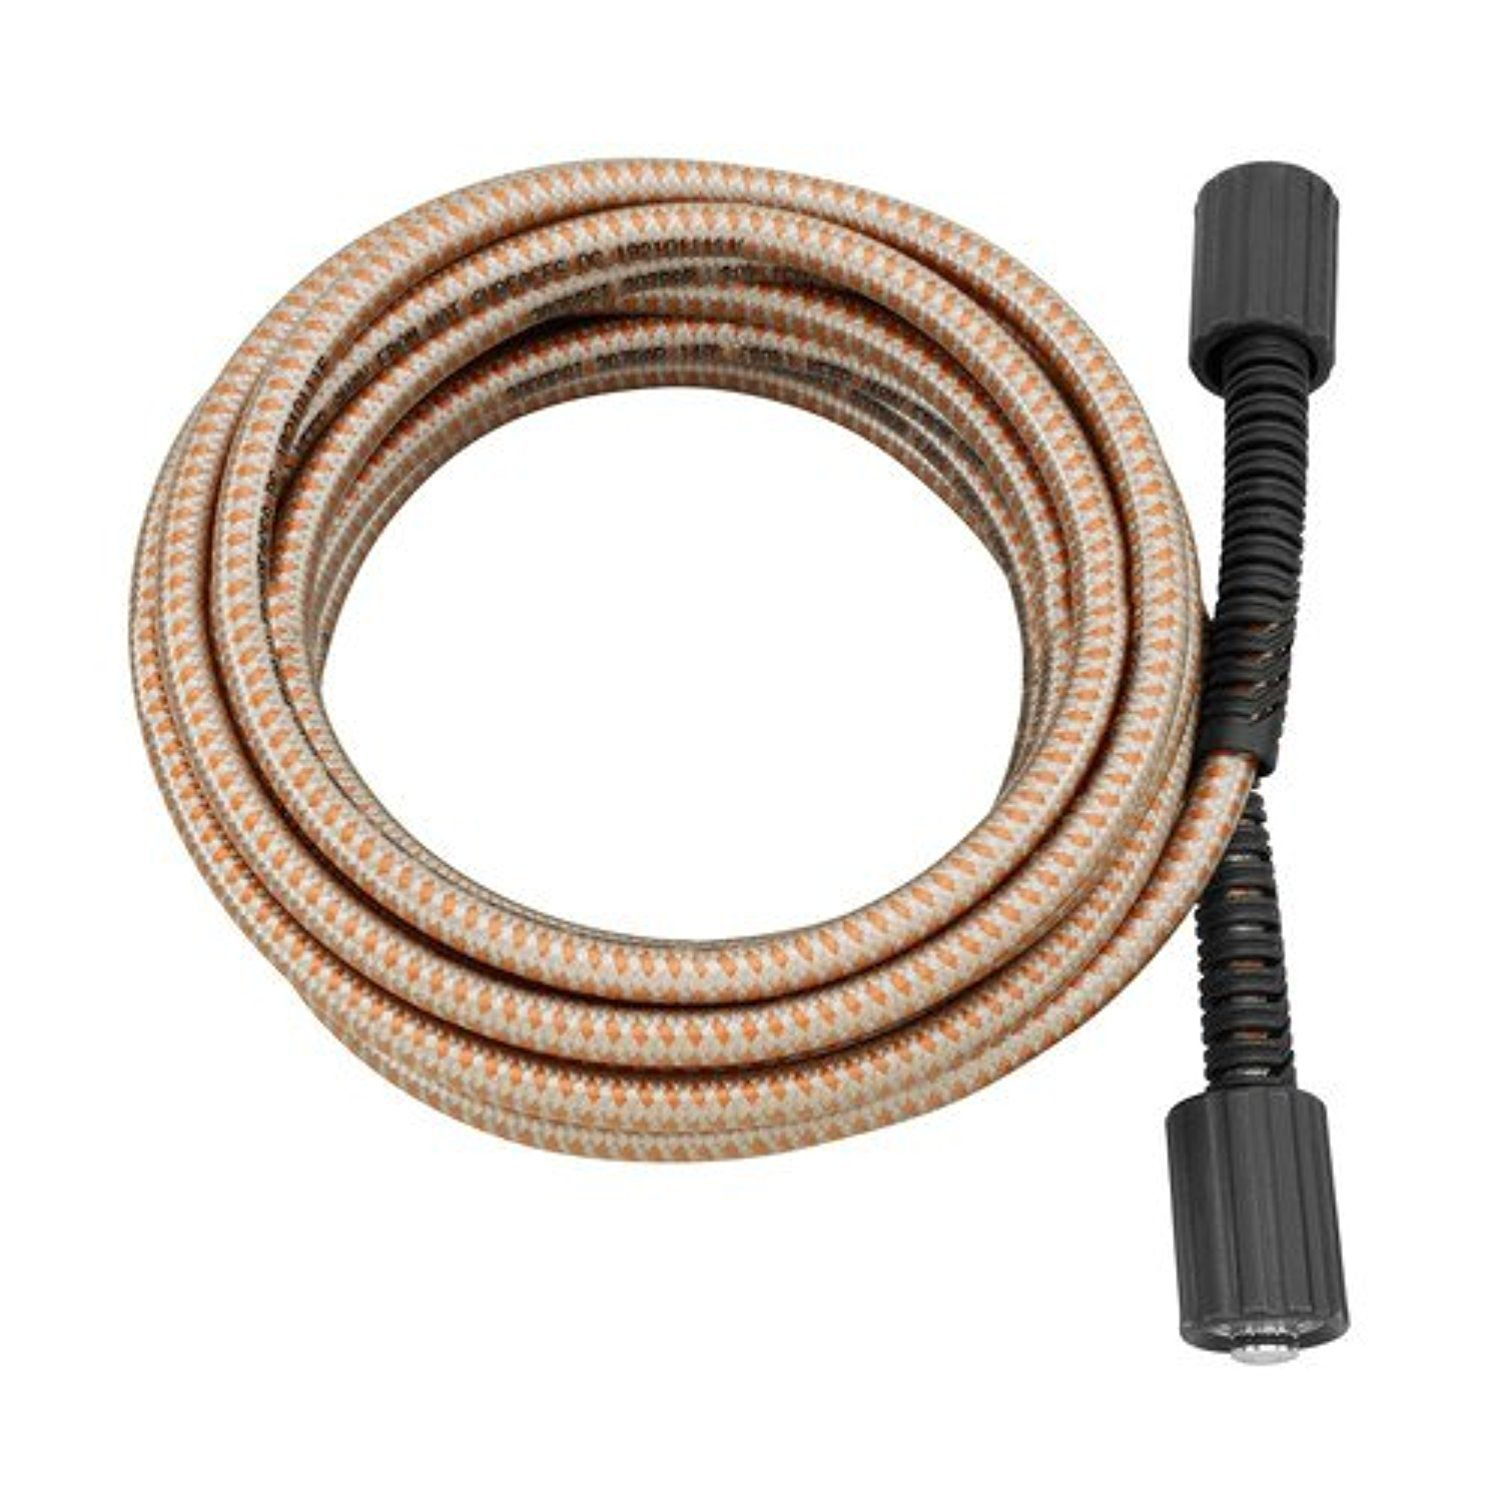 Ariens 786004 25 Ft Powerflex Pressure Washer Hose For 986 Series Pressure Washers Awesome Products Selected By Washer Hoses Pressure Washer Beer Glass Set